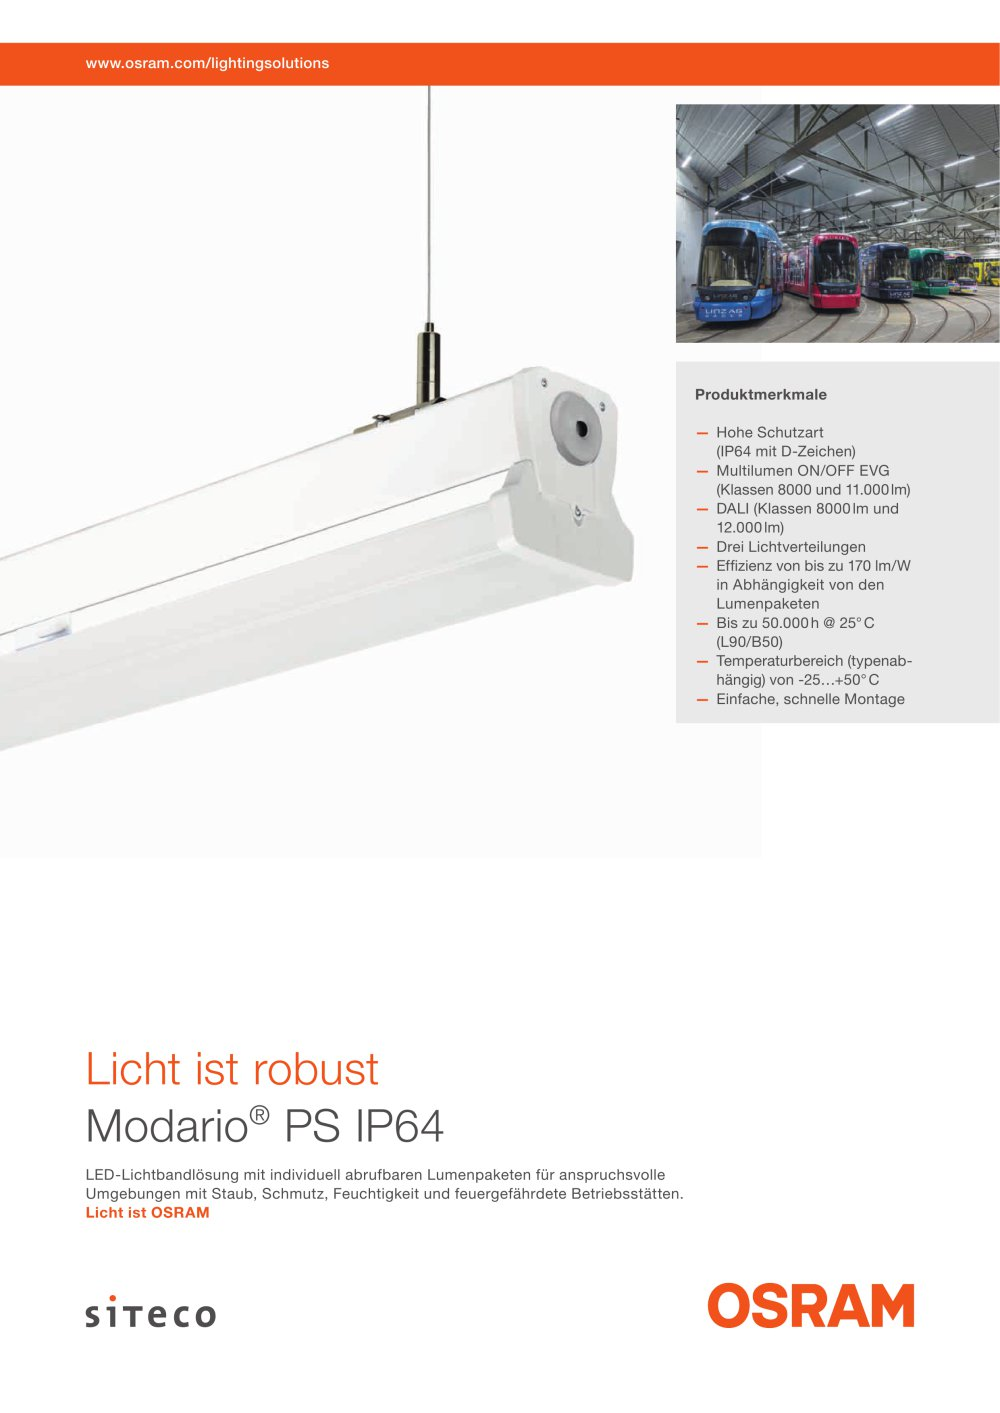 Modario Ps Ip64 Multilumen Siteco Catalogue Pdf